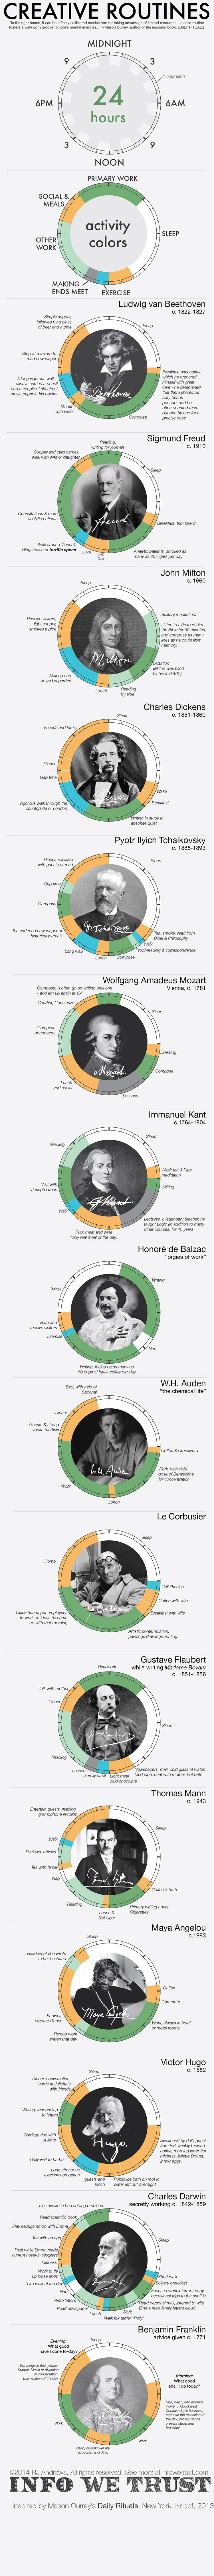 daily routines of earth's geniuses